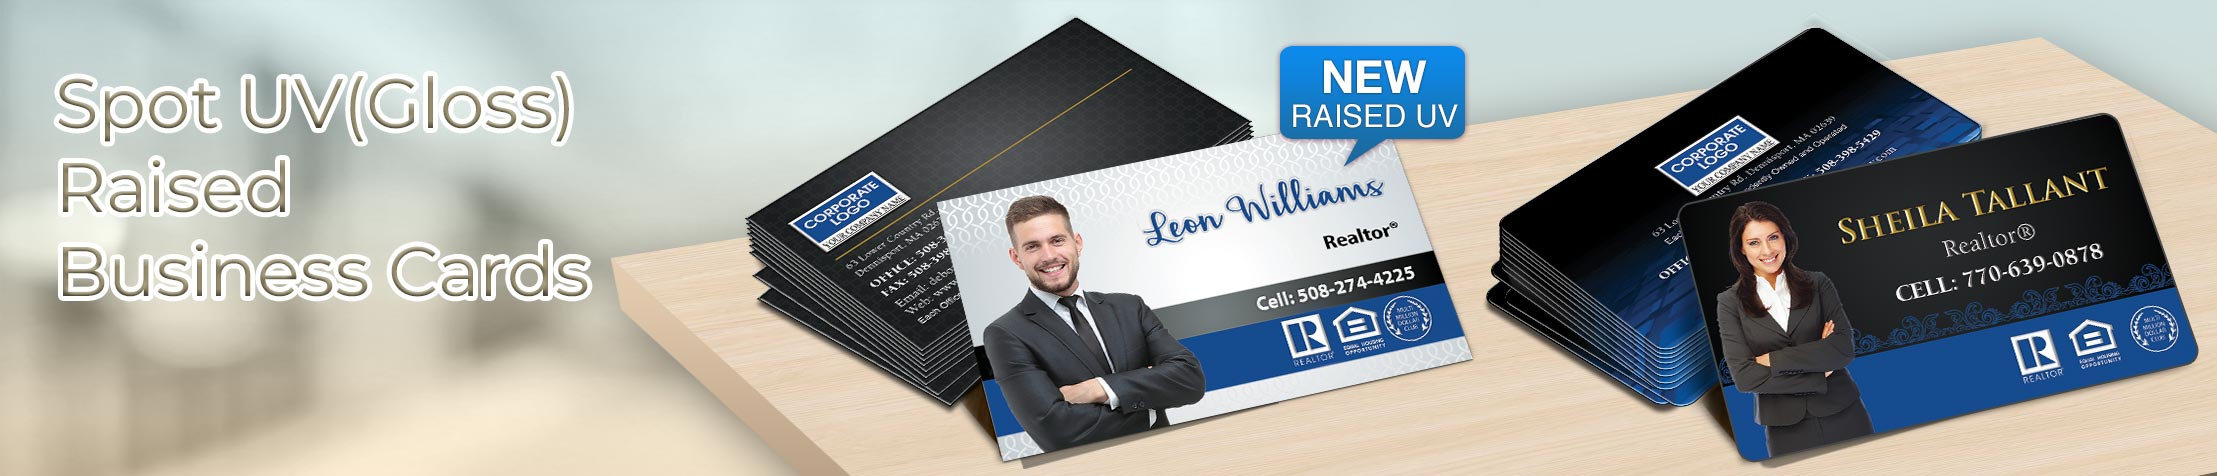 Coldwell Banker Real Estate Spot UV(Gloss) Raised Business Cards - Coldwell Banker - Glossy, Embossed Business Cards for Realtors | BestPrintBuy.com